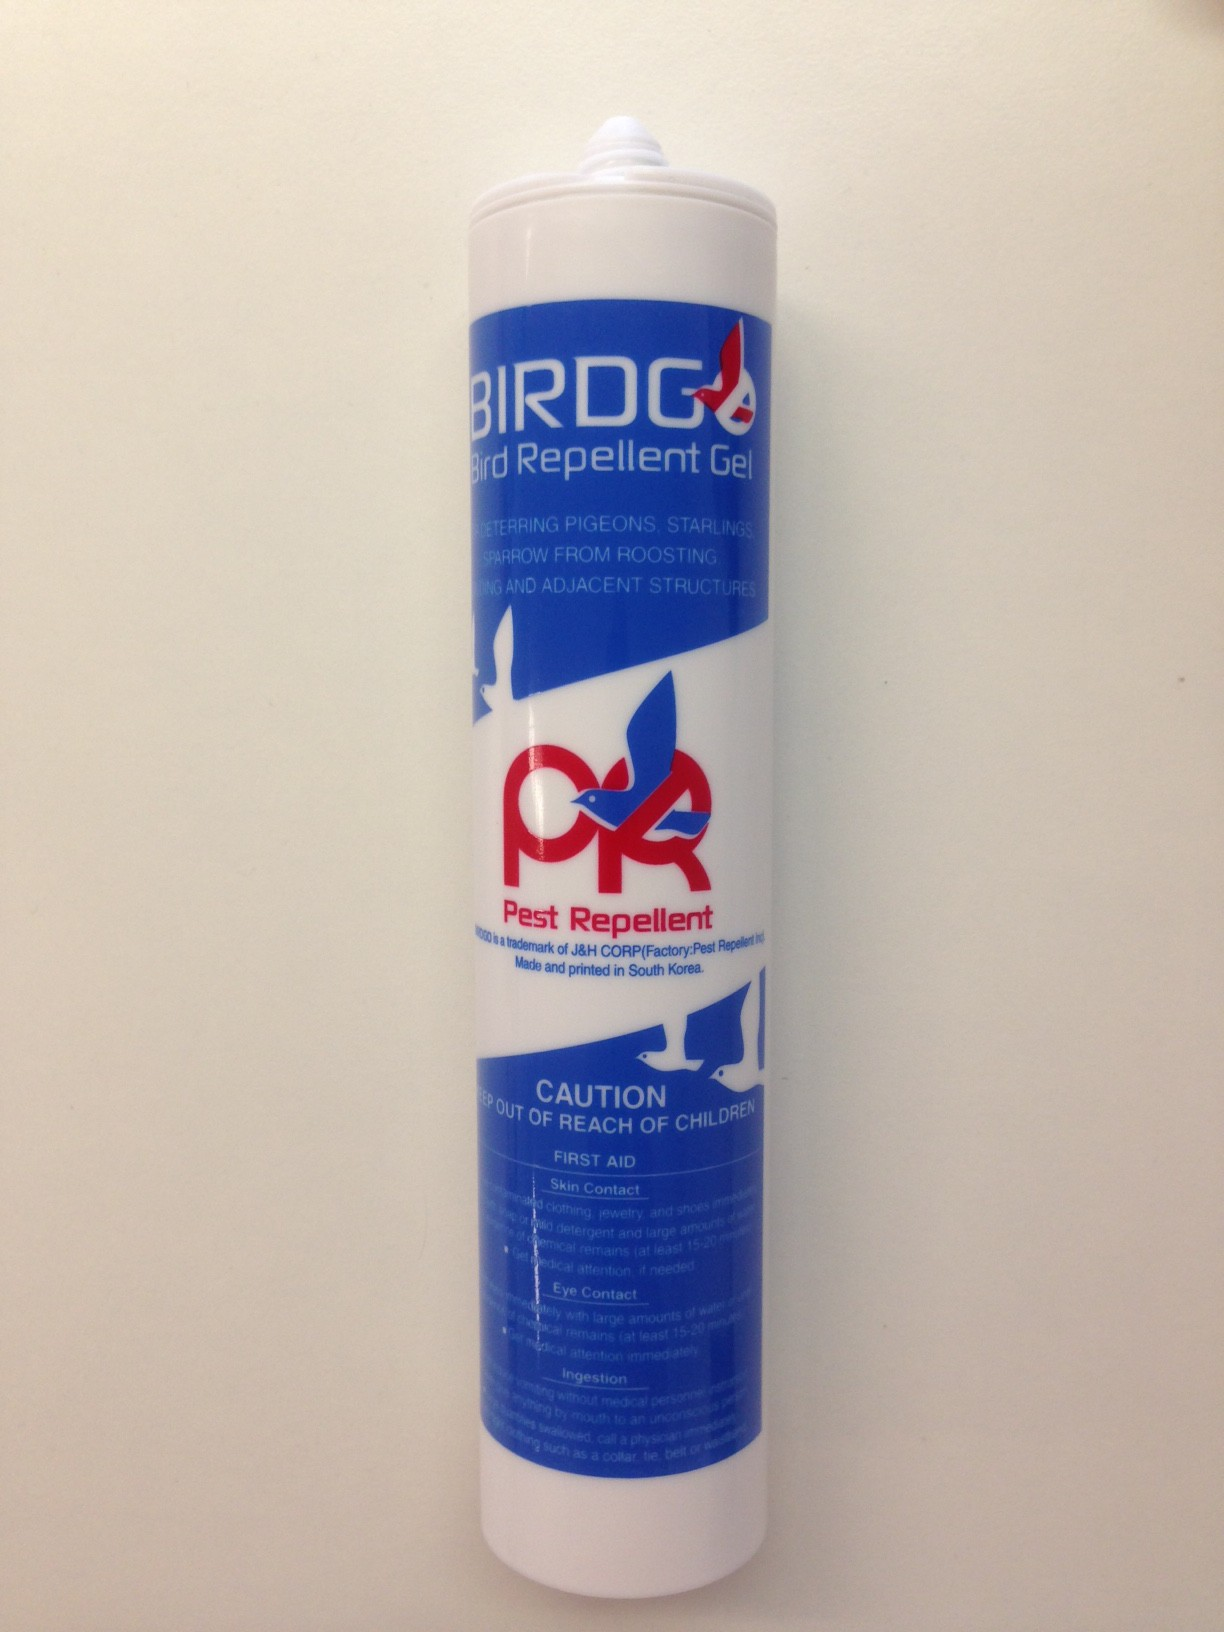 Bird repellent gel